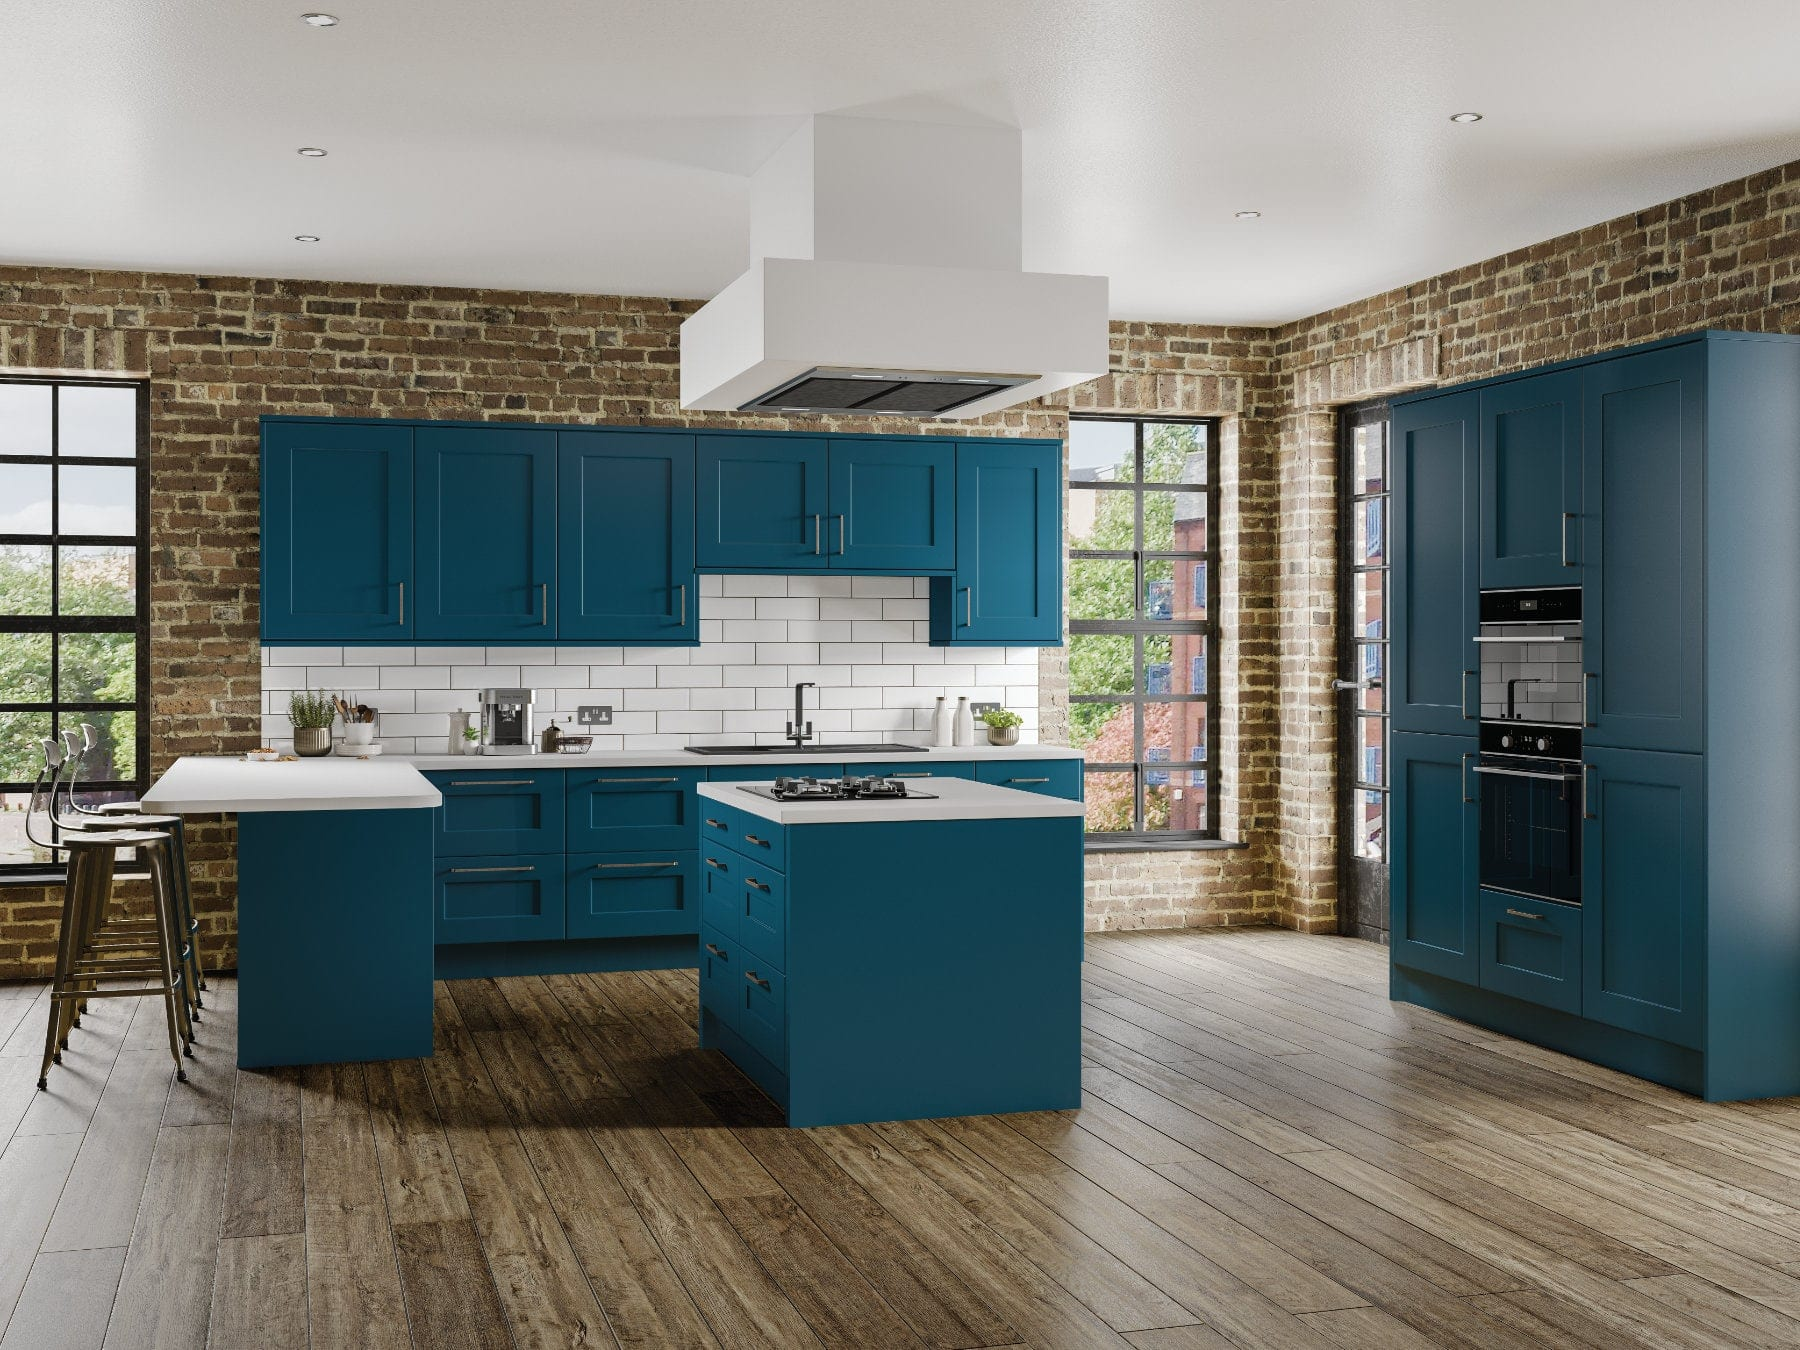 Jjo Caton Midnight Blue Open Plan Kitchen With Island | Right Choice Kitchens, South Wales